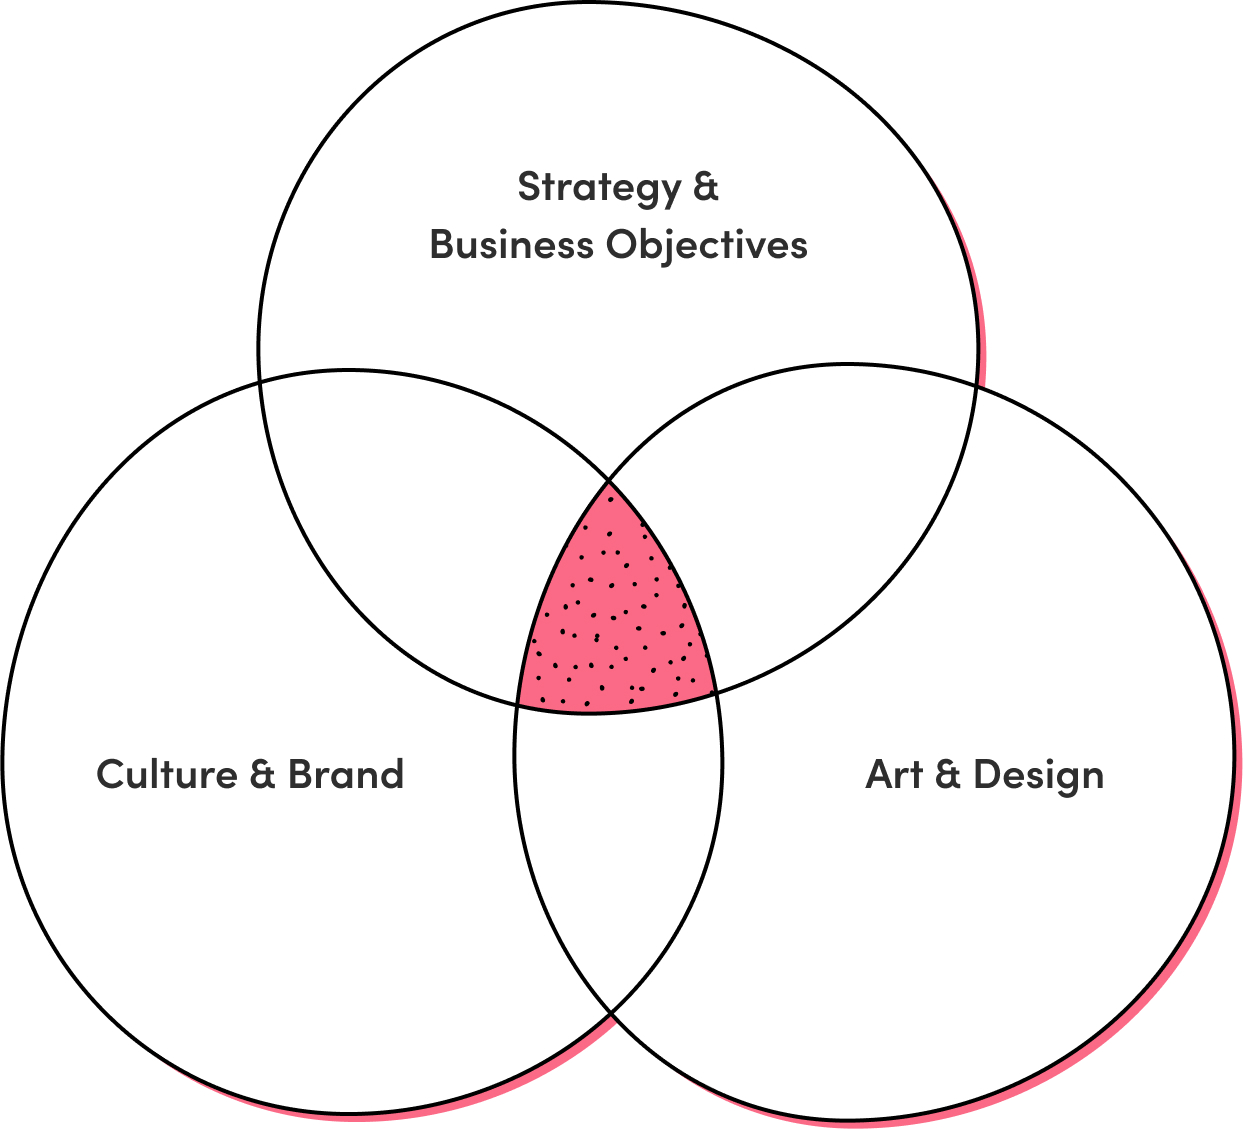 Strategy & Business Objectives, Culture & Brand, and Art & Design Venn